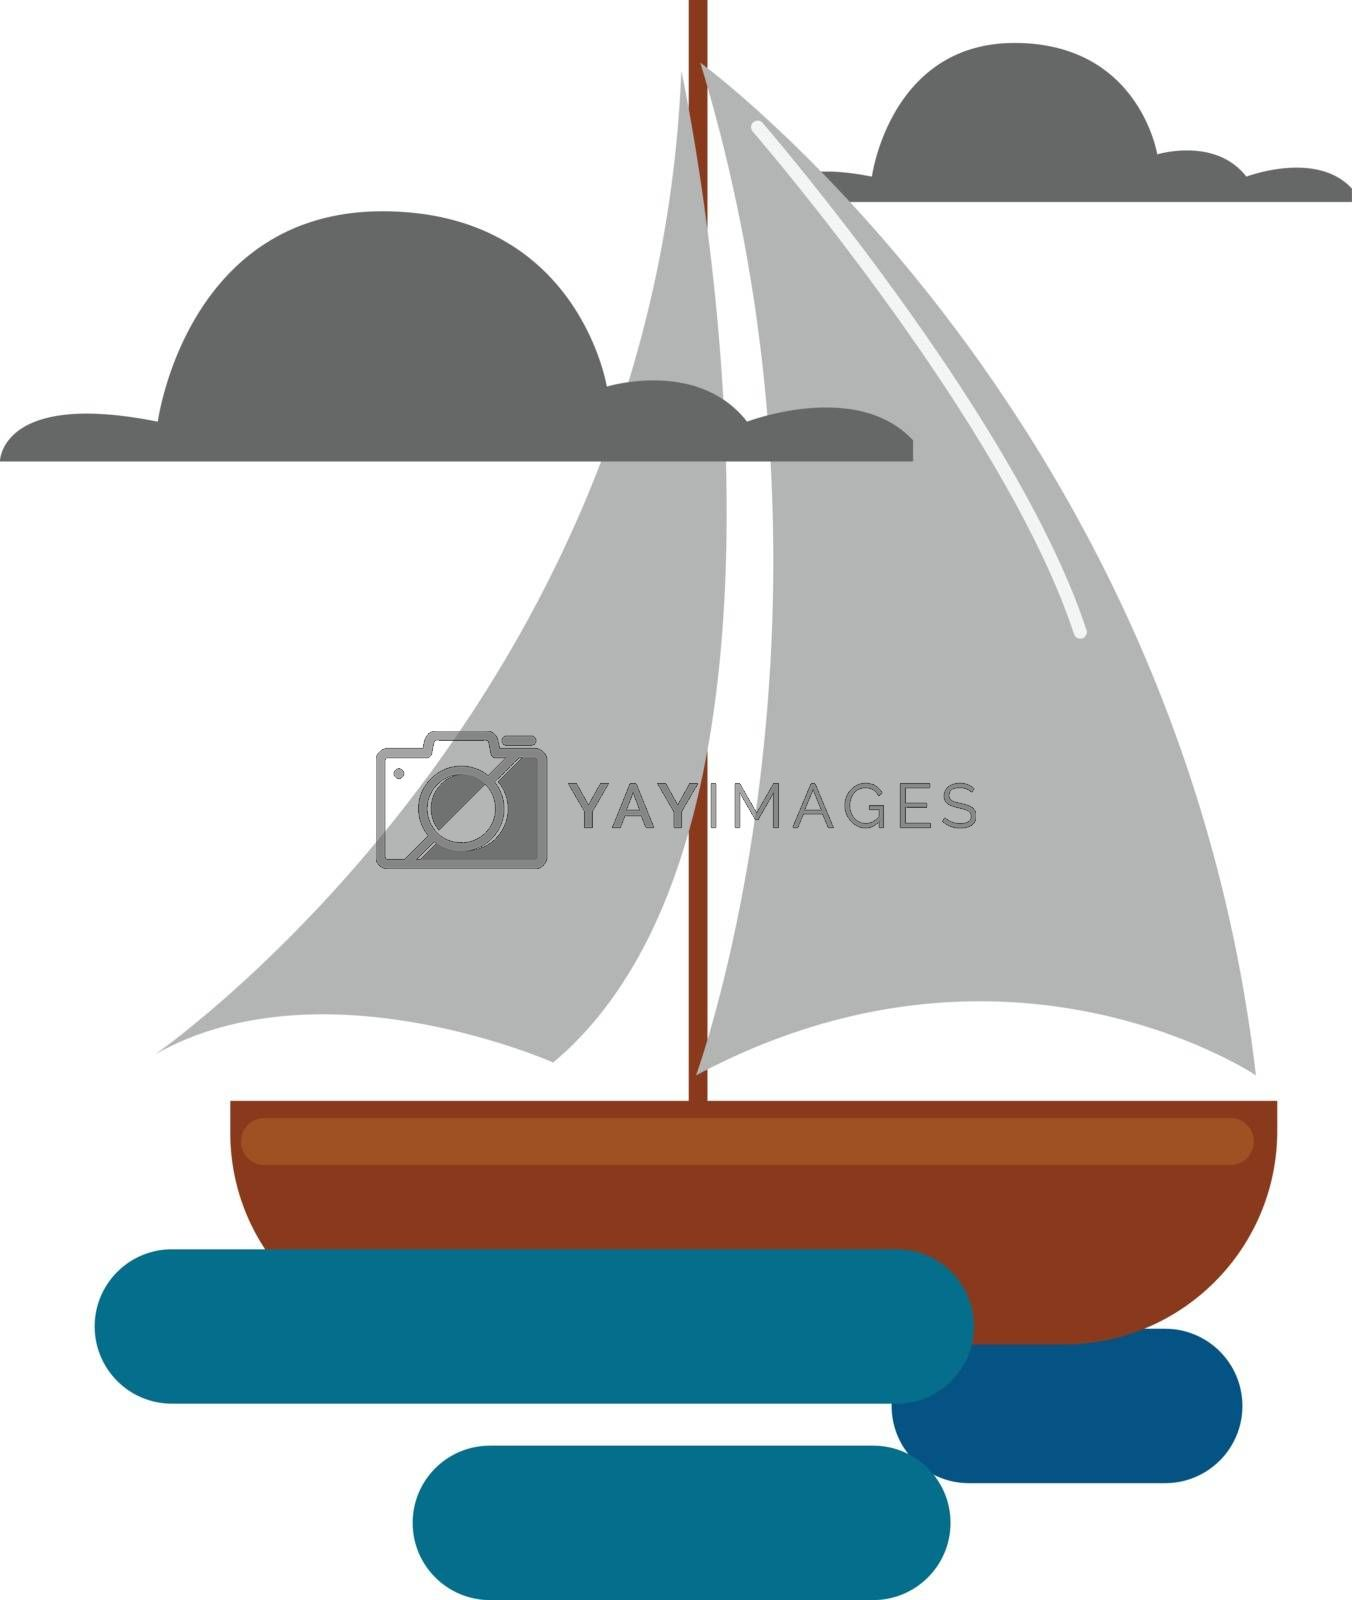 Royalty free image of Clipart of a boat vector or color illustration by Morphart